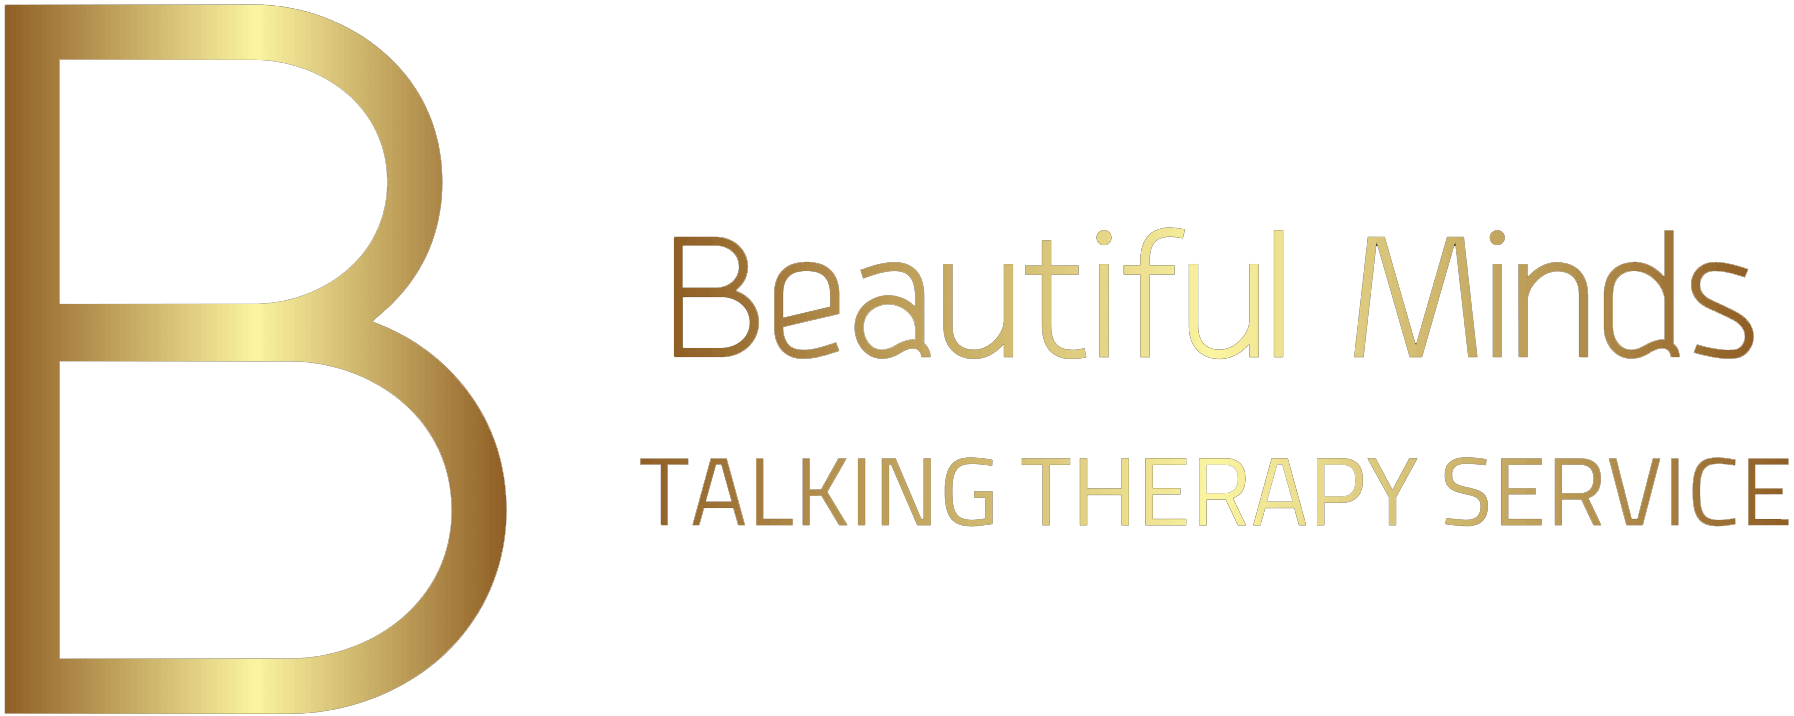 Beautiful Minds talking therapy service